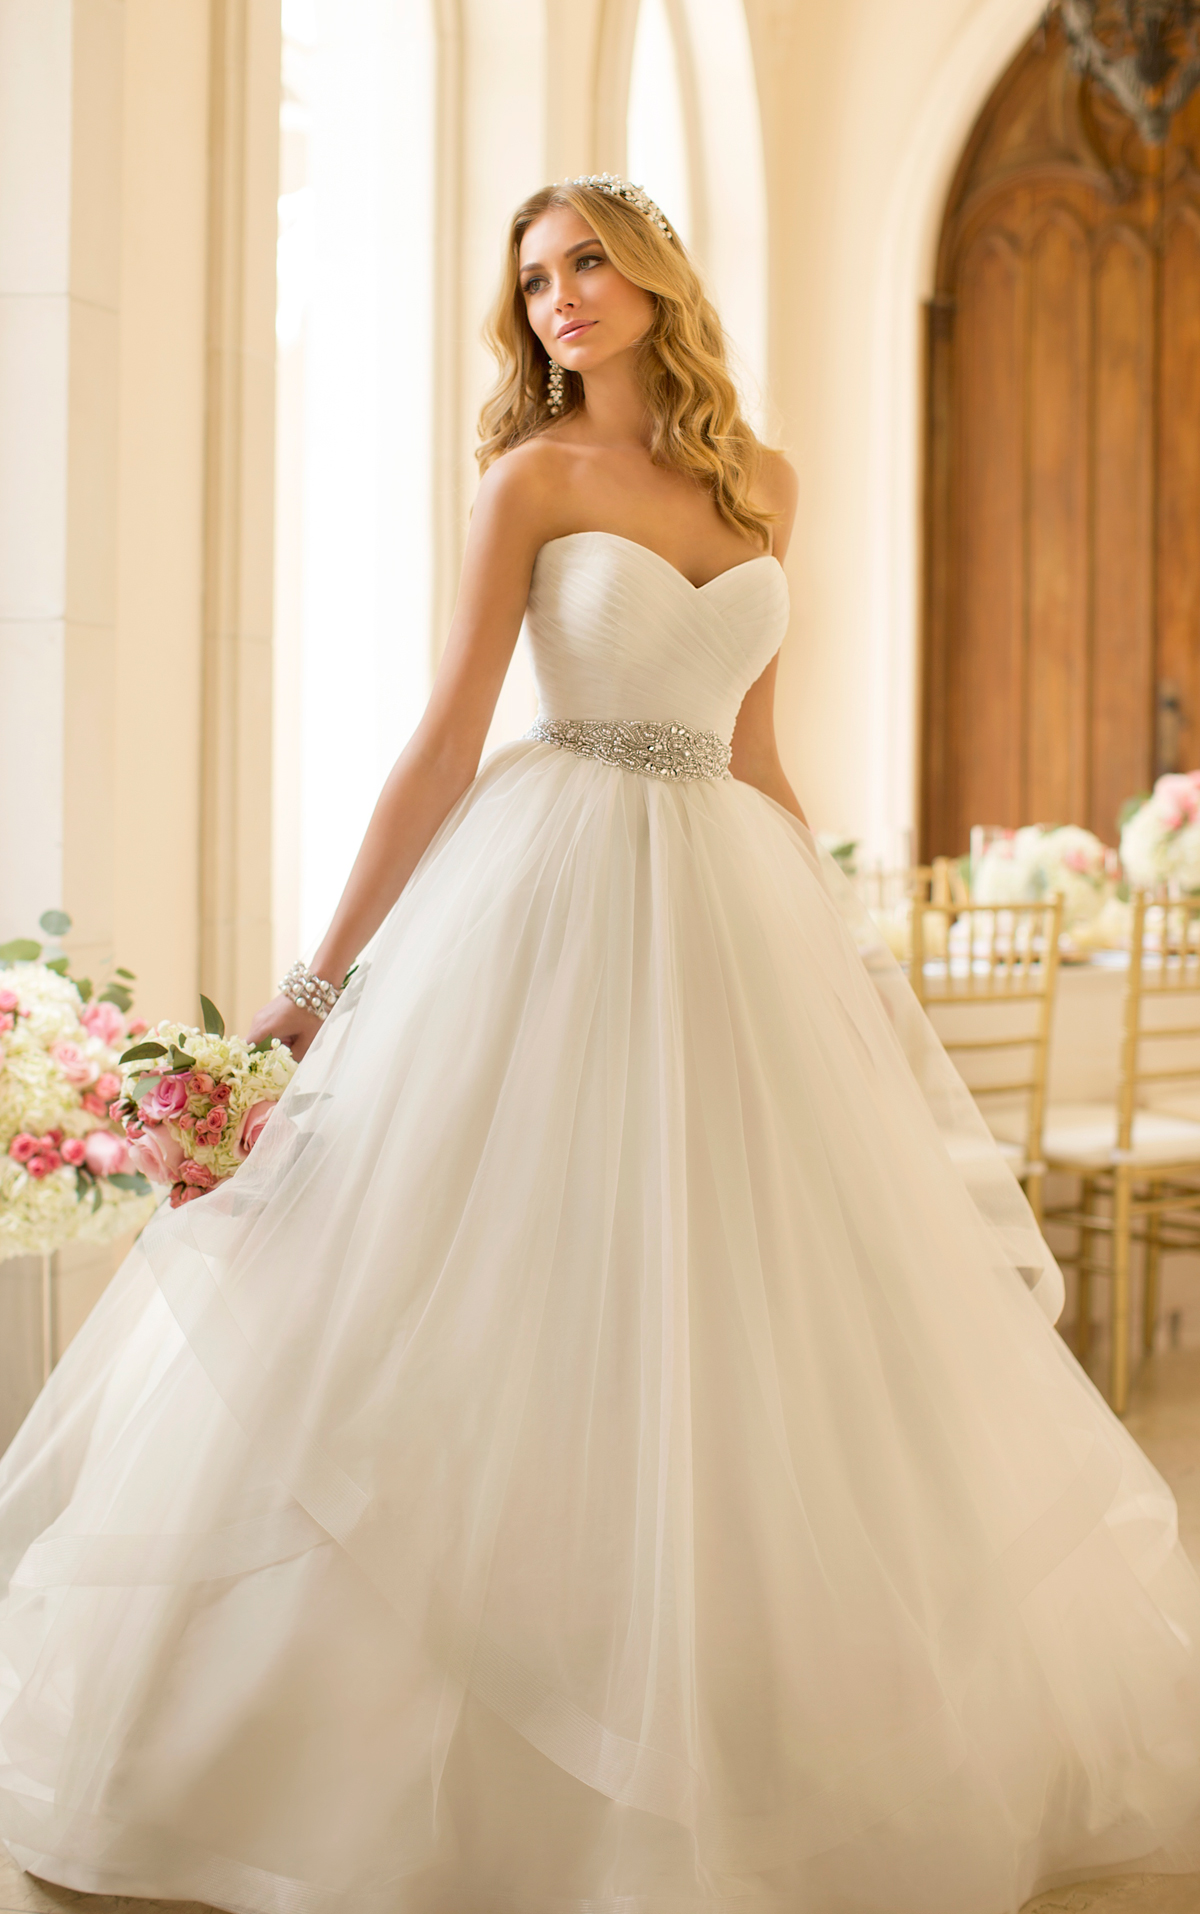 378e1c81834 Glamorous Stella York Wedding Dresses 2014 Collection - MODwedding